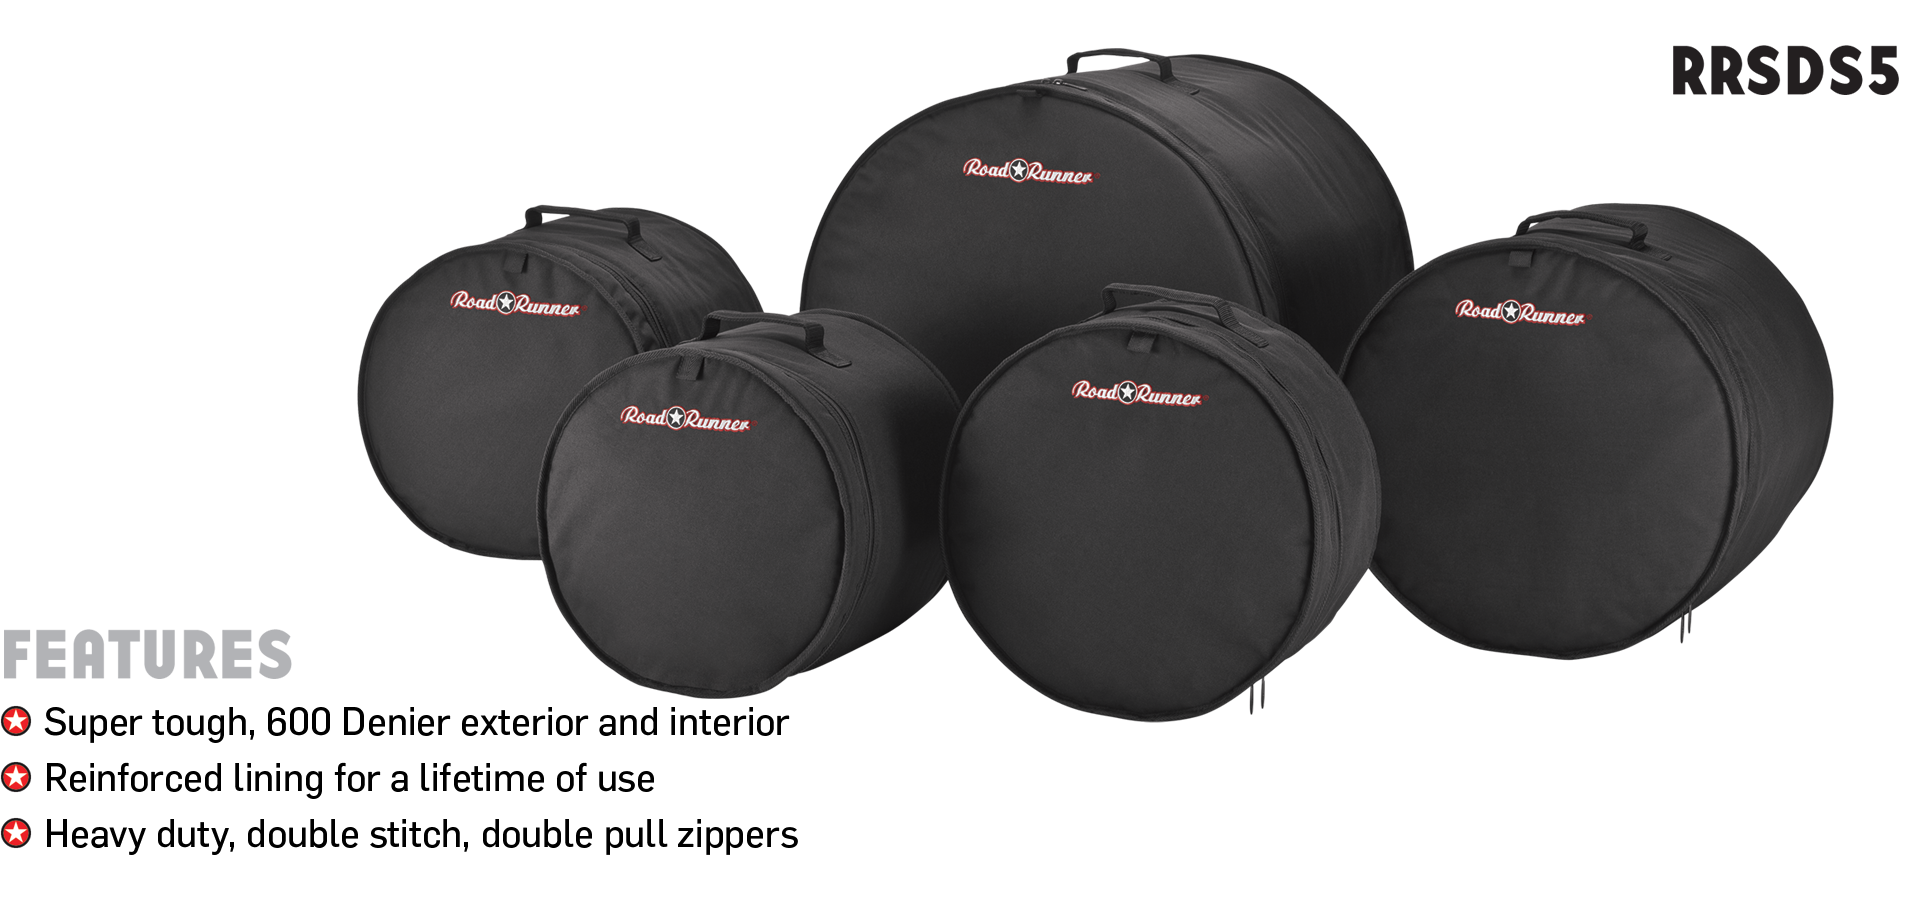 5-Piece Drum Bag Set Standard Road Runner RRSDS5